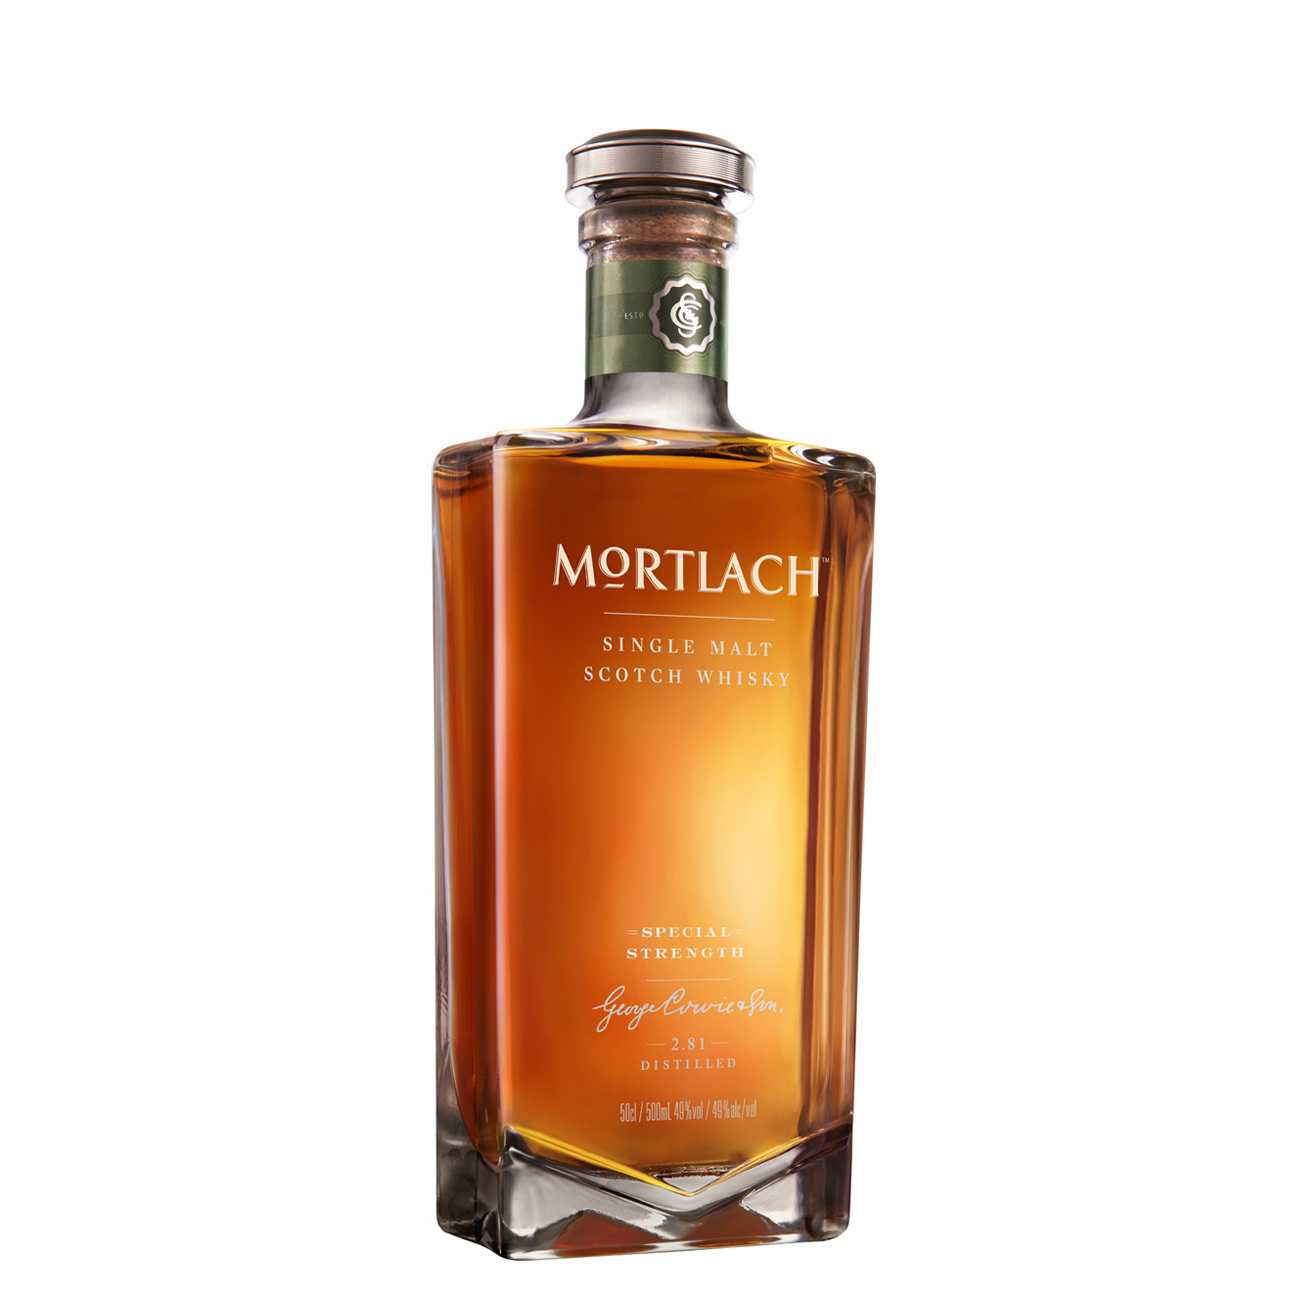 Whisky scotian, SINGLE MALT 500 ML, Mortlach